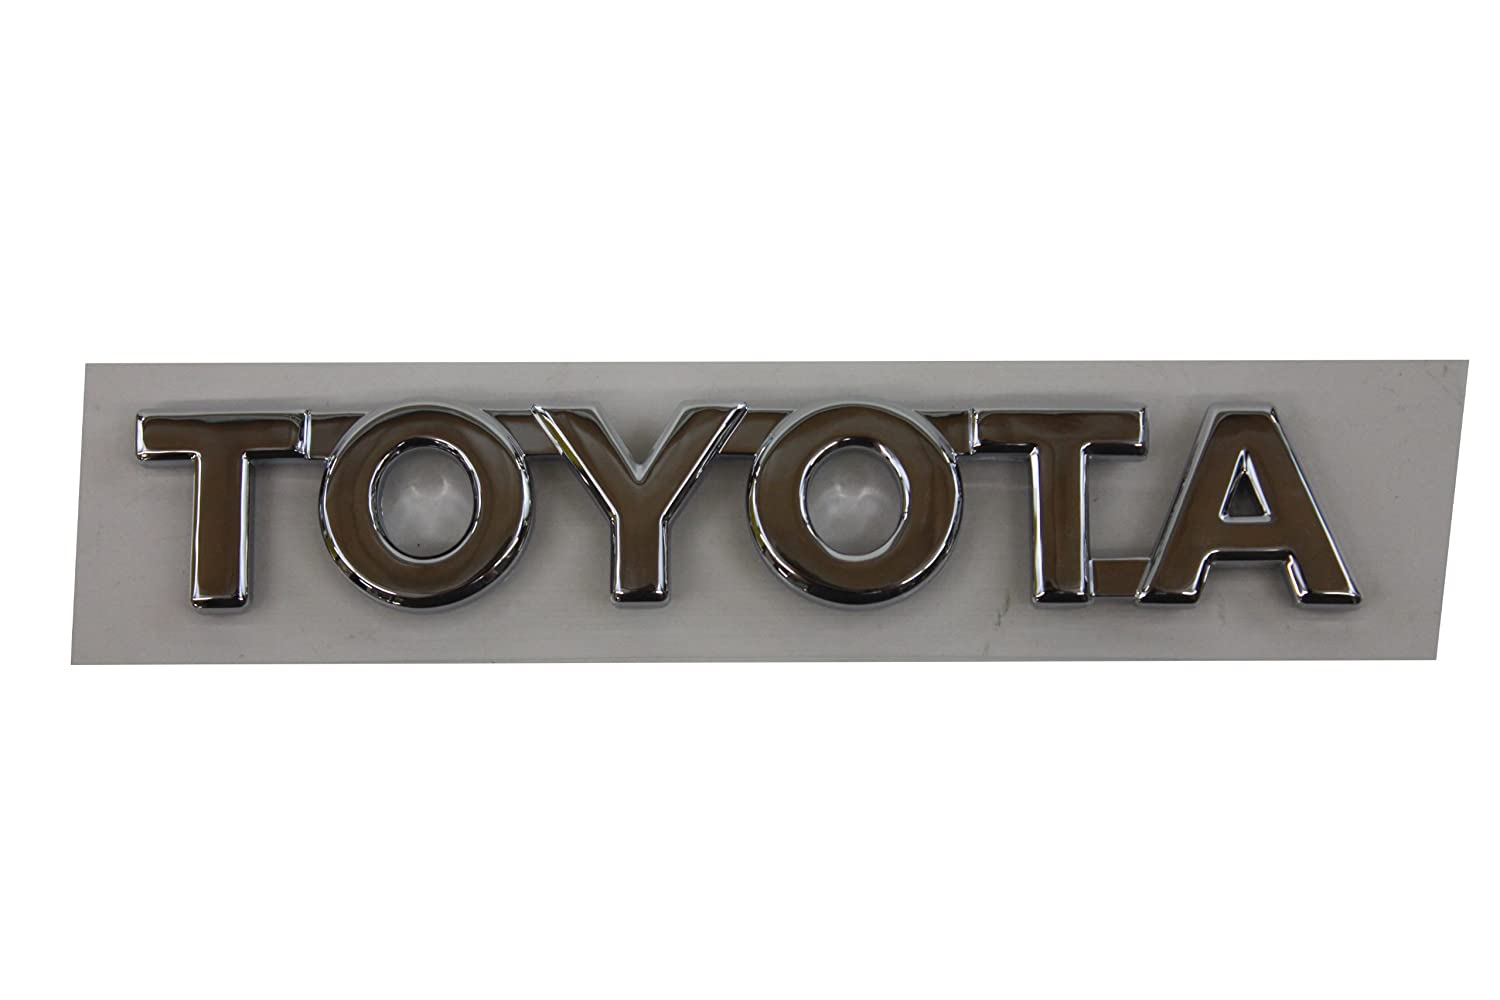 TOYOTA Genuine Accessories 75444-08010 Emblem